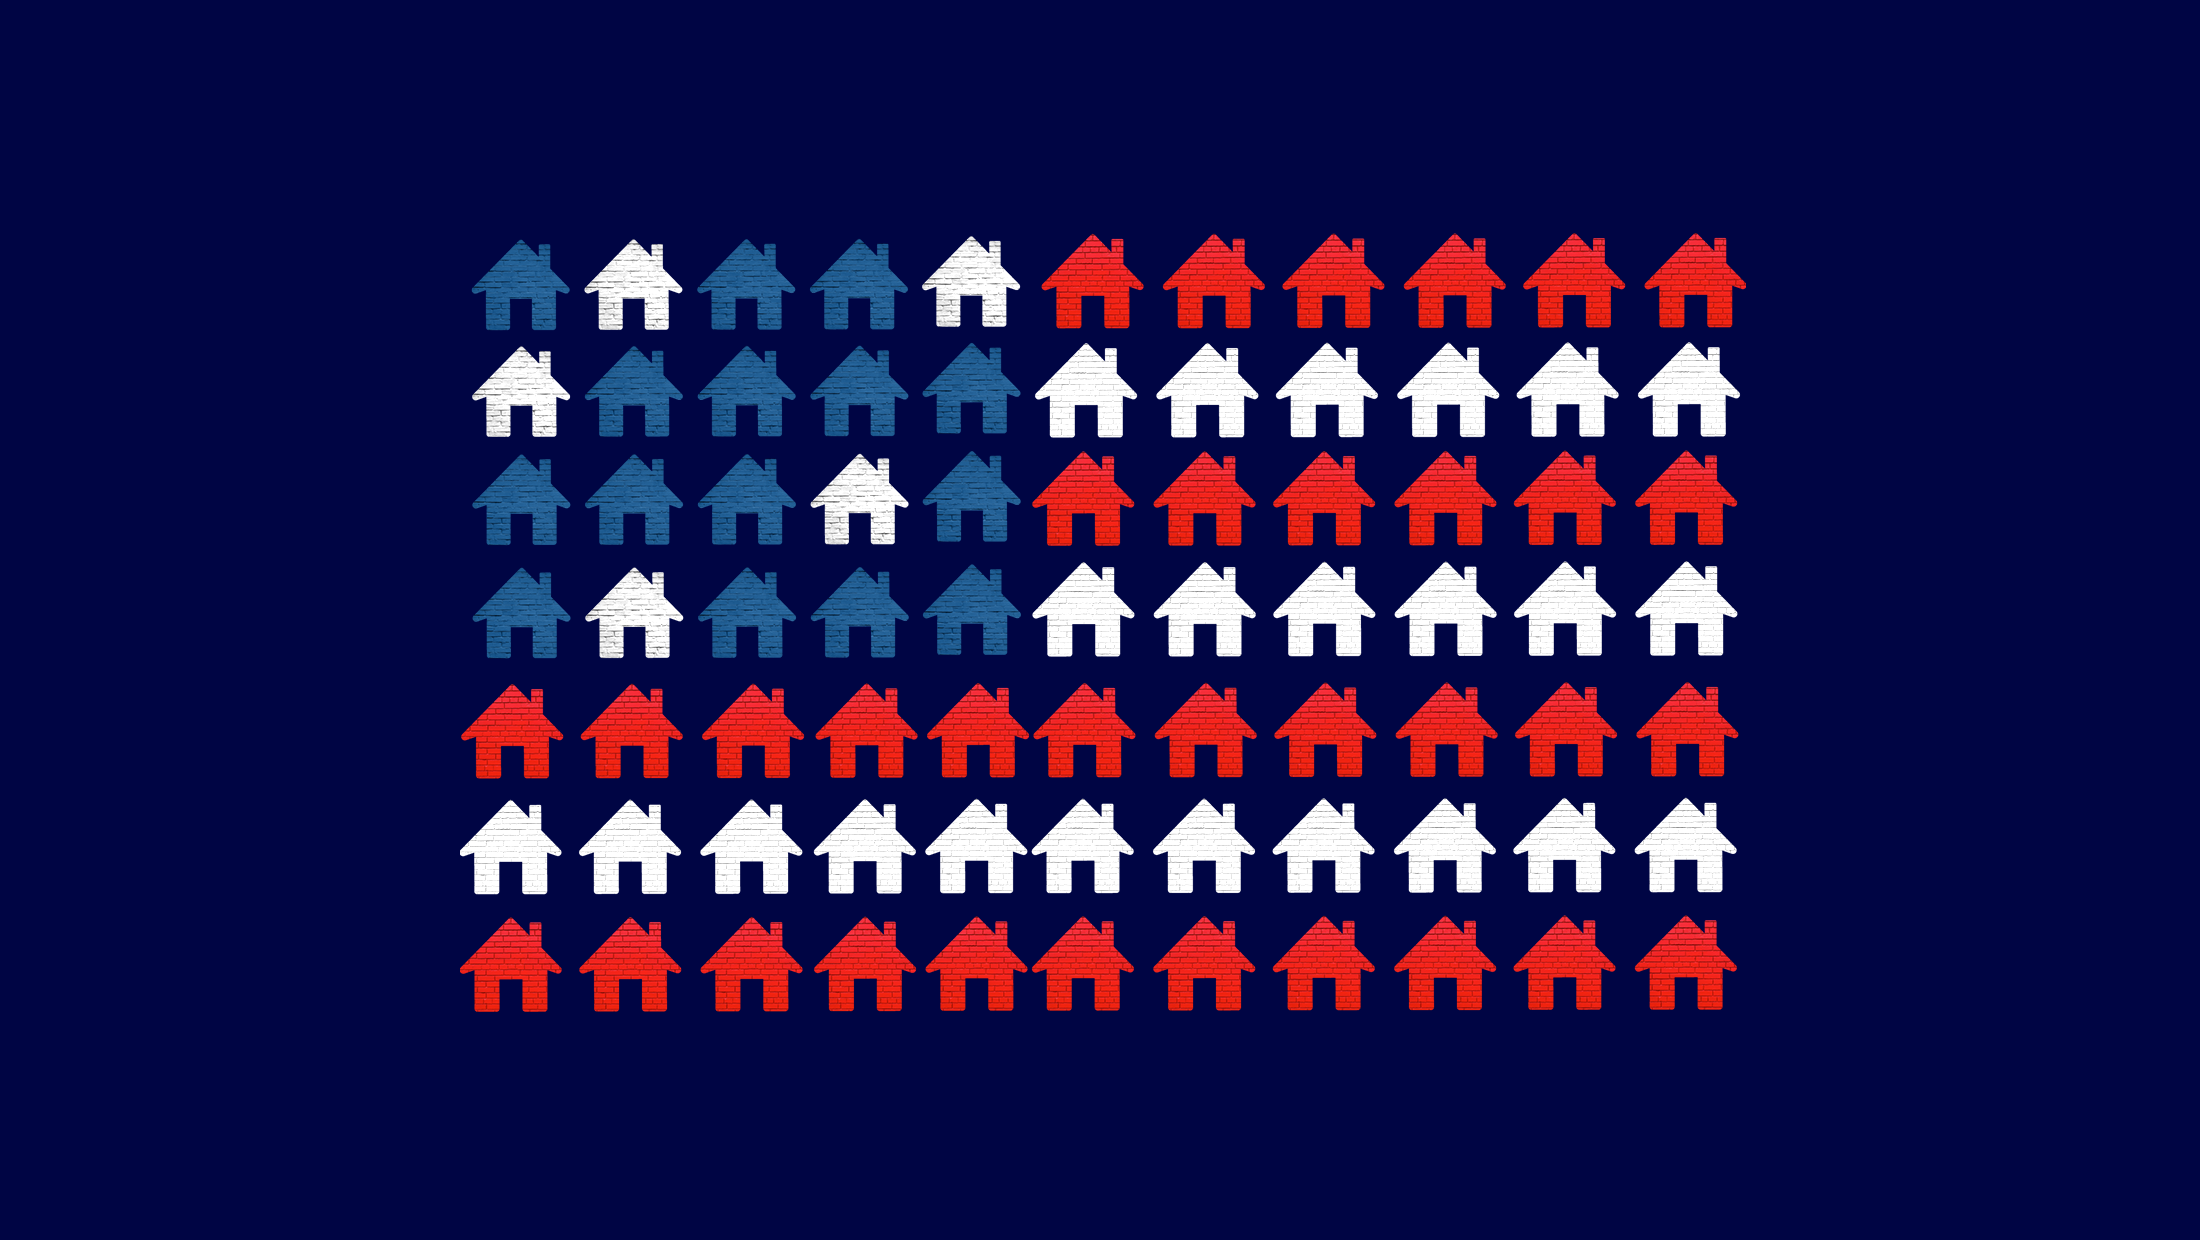 An American flag made out of individual red, white and blue houses